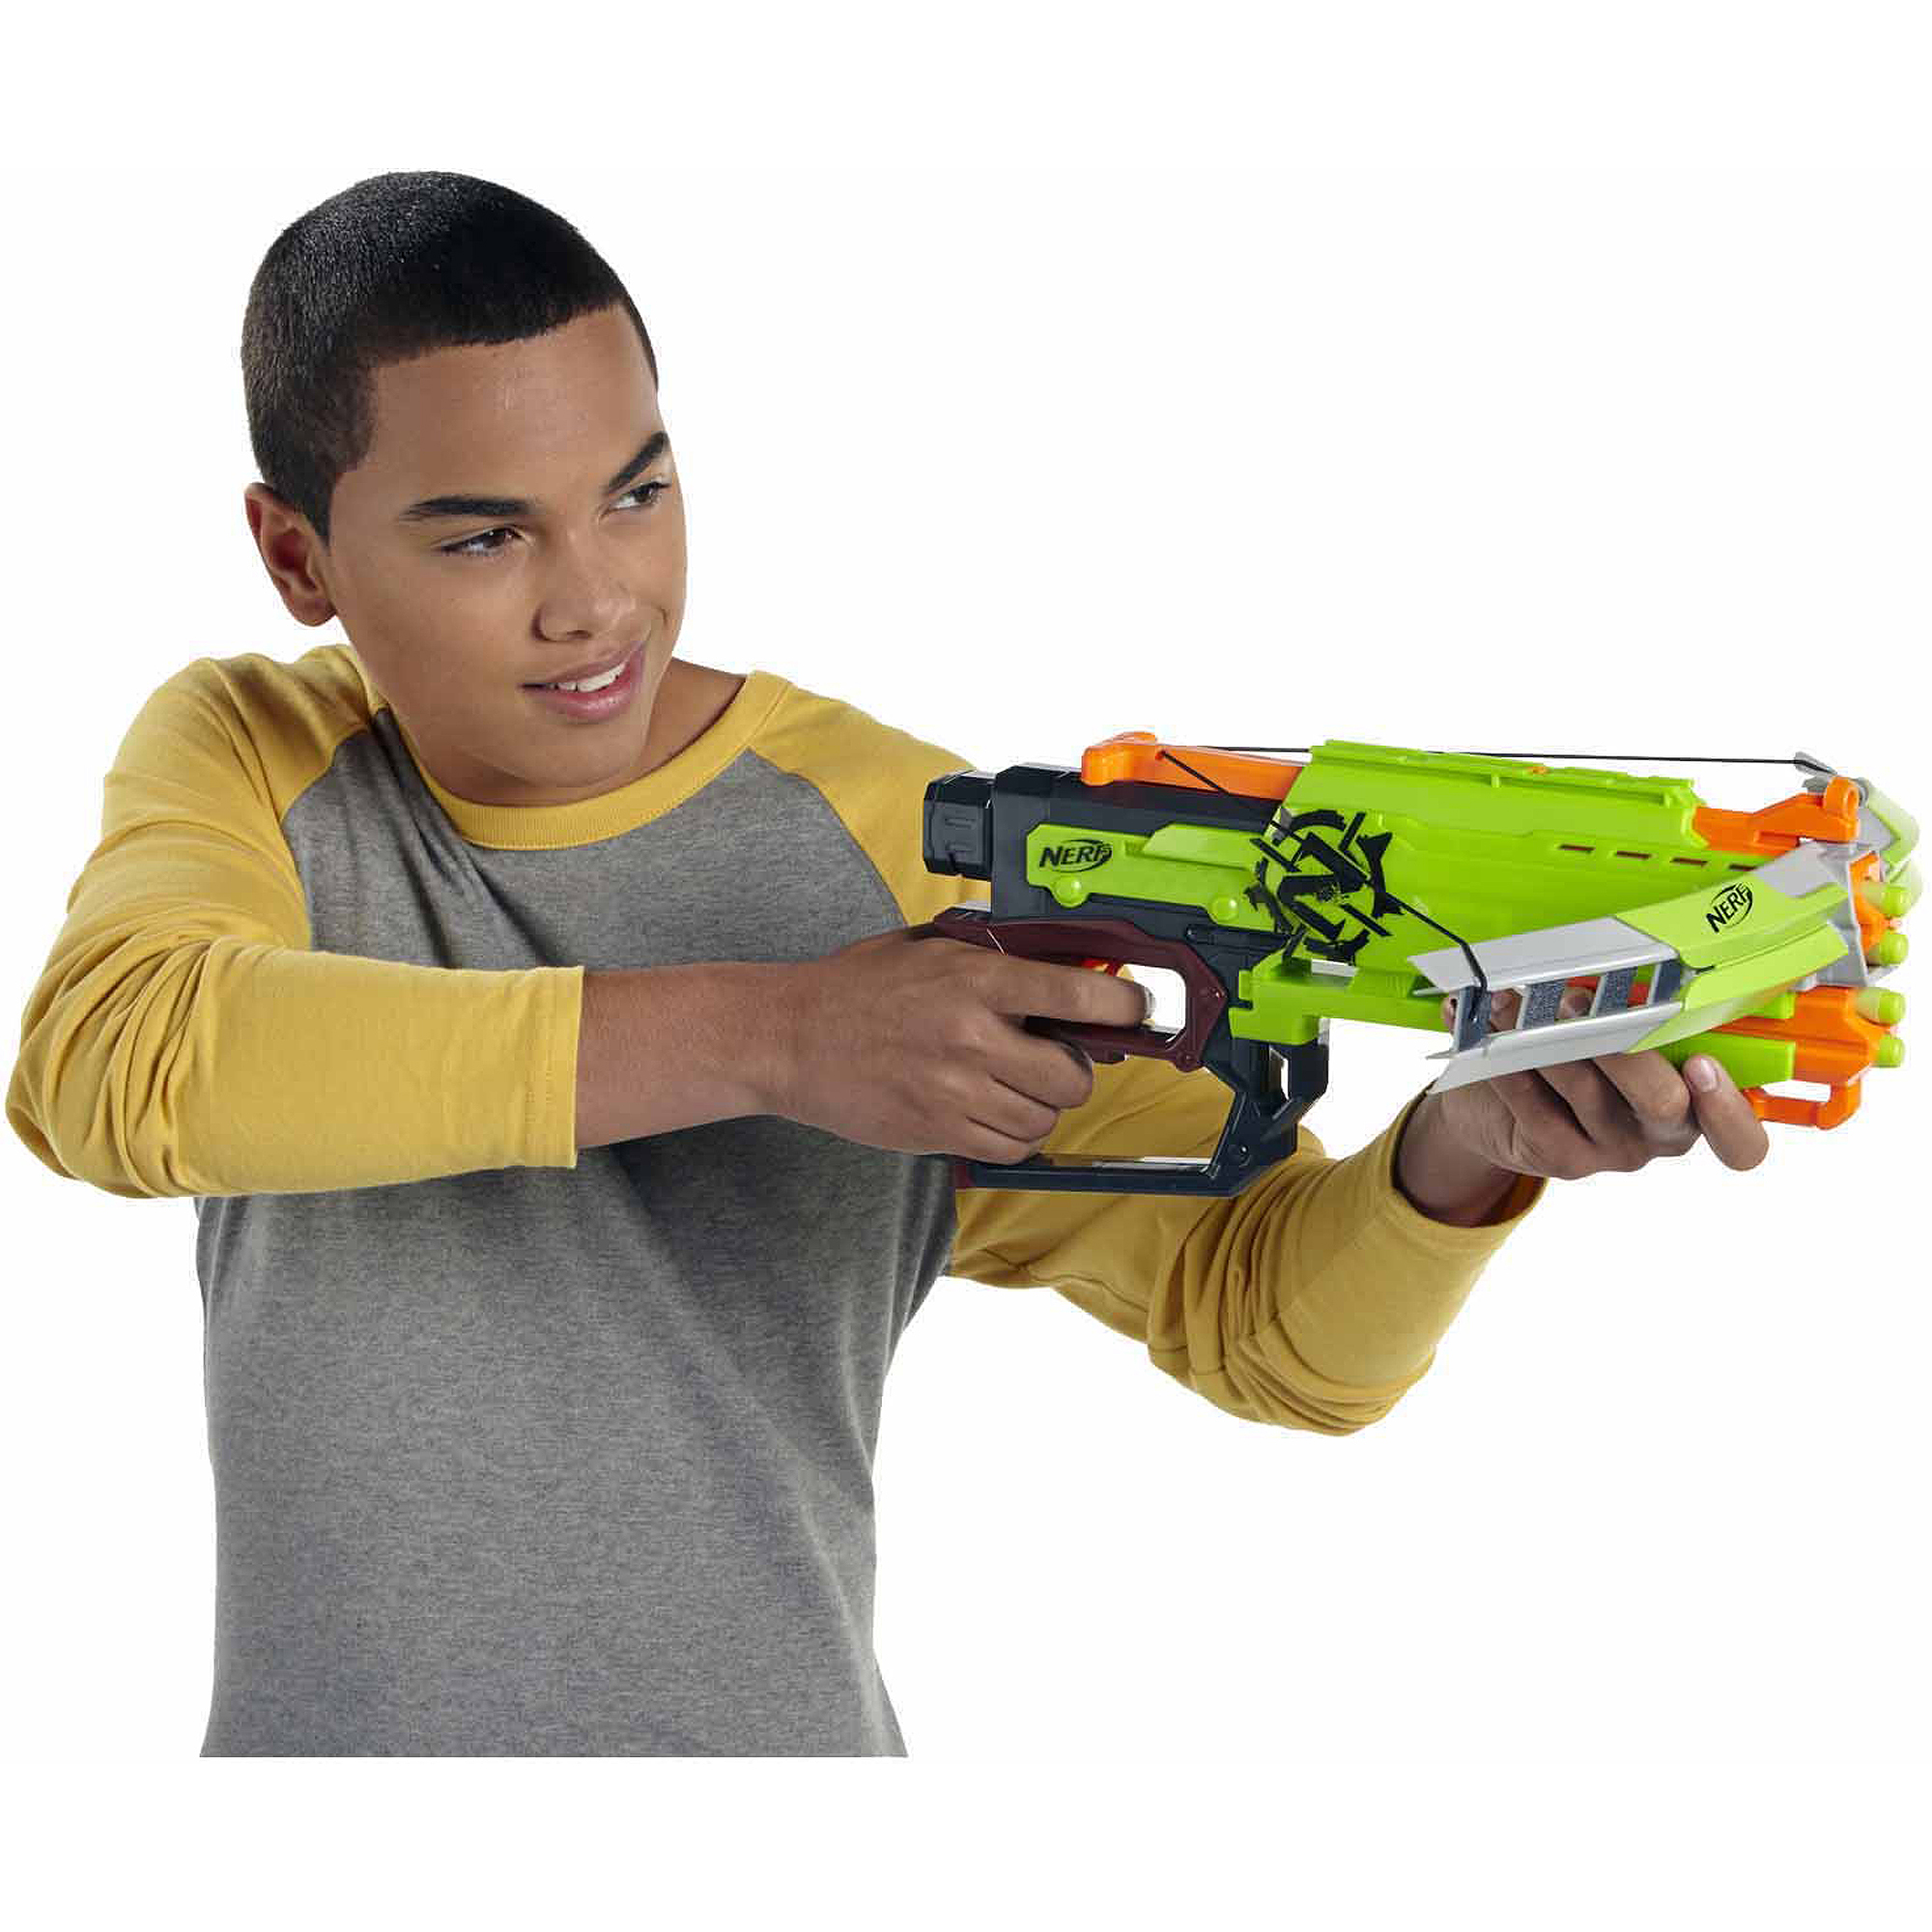 Nerf zombie strike guns images - ted wallpaper iphone 6